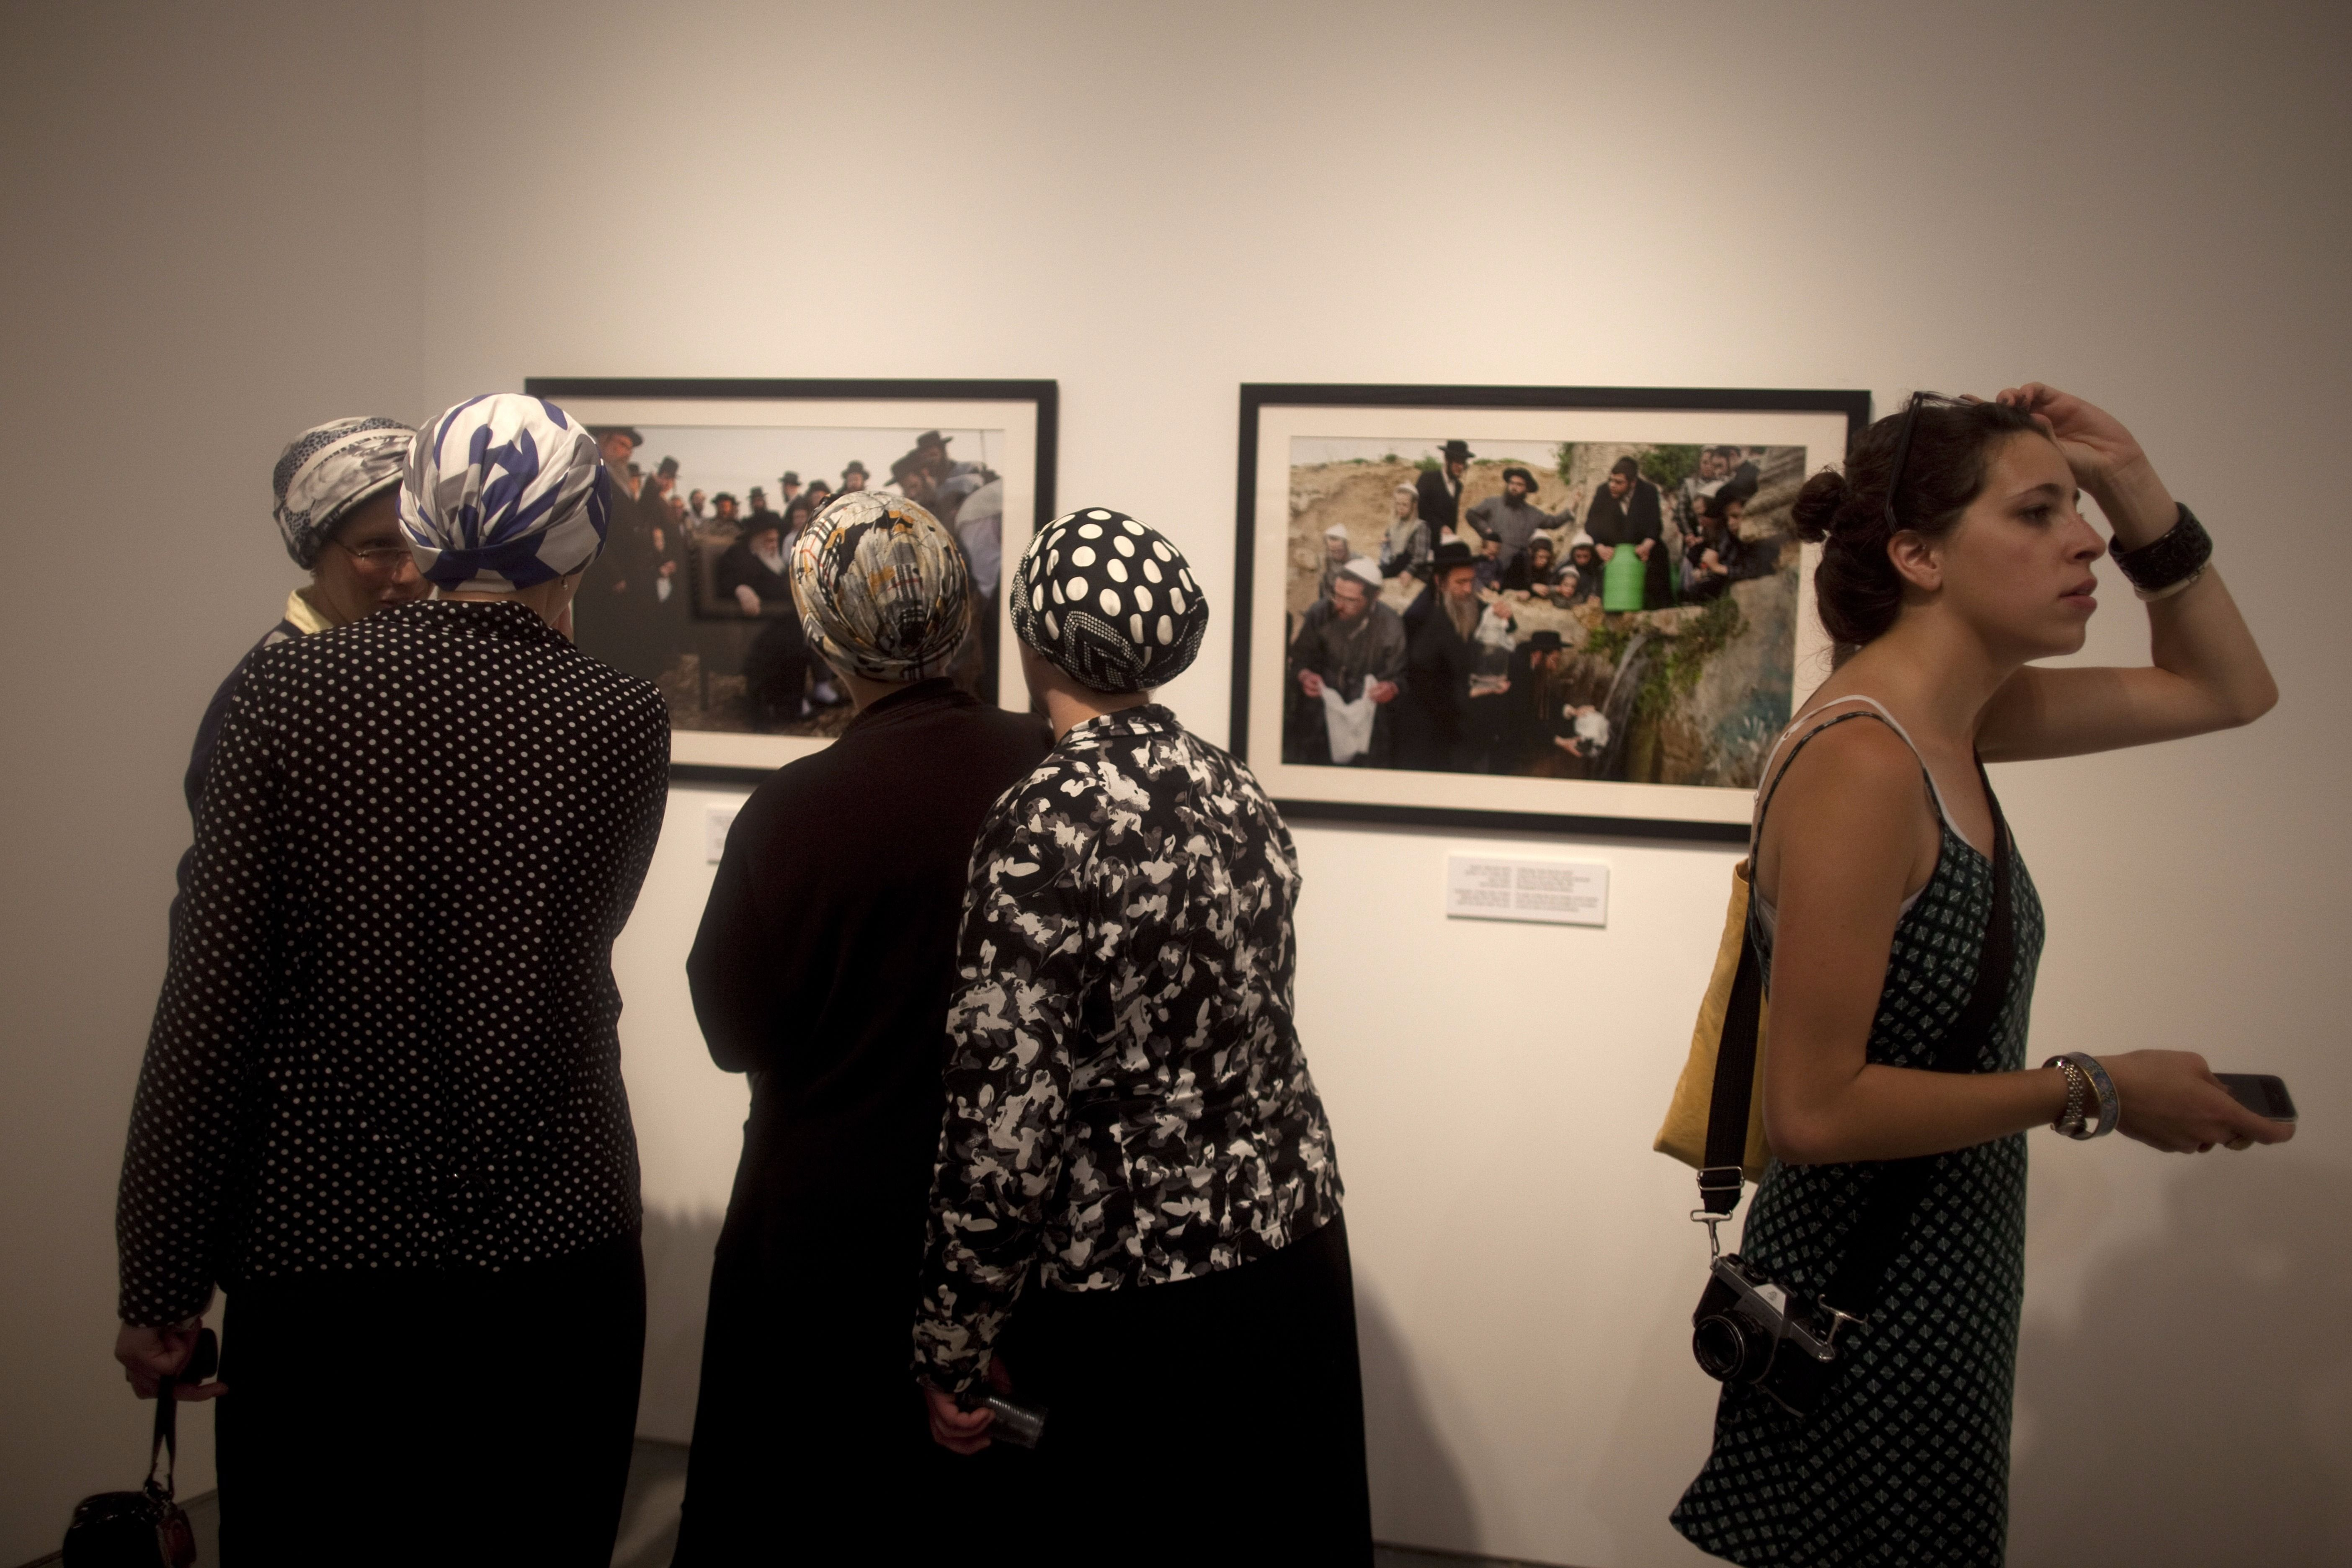 Women visiting the Israel Museum, Jerusalem.